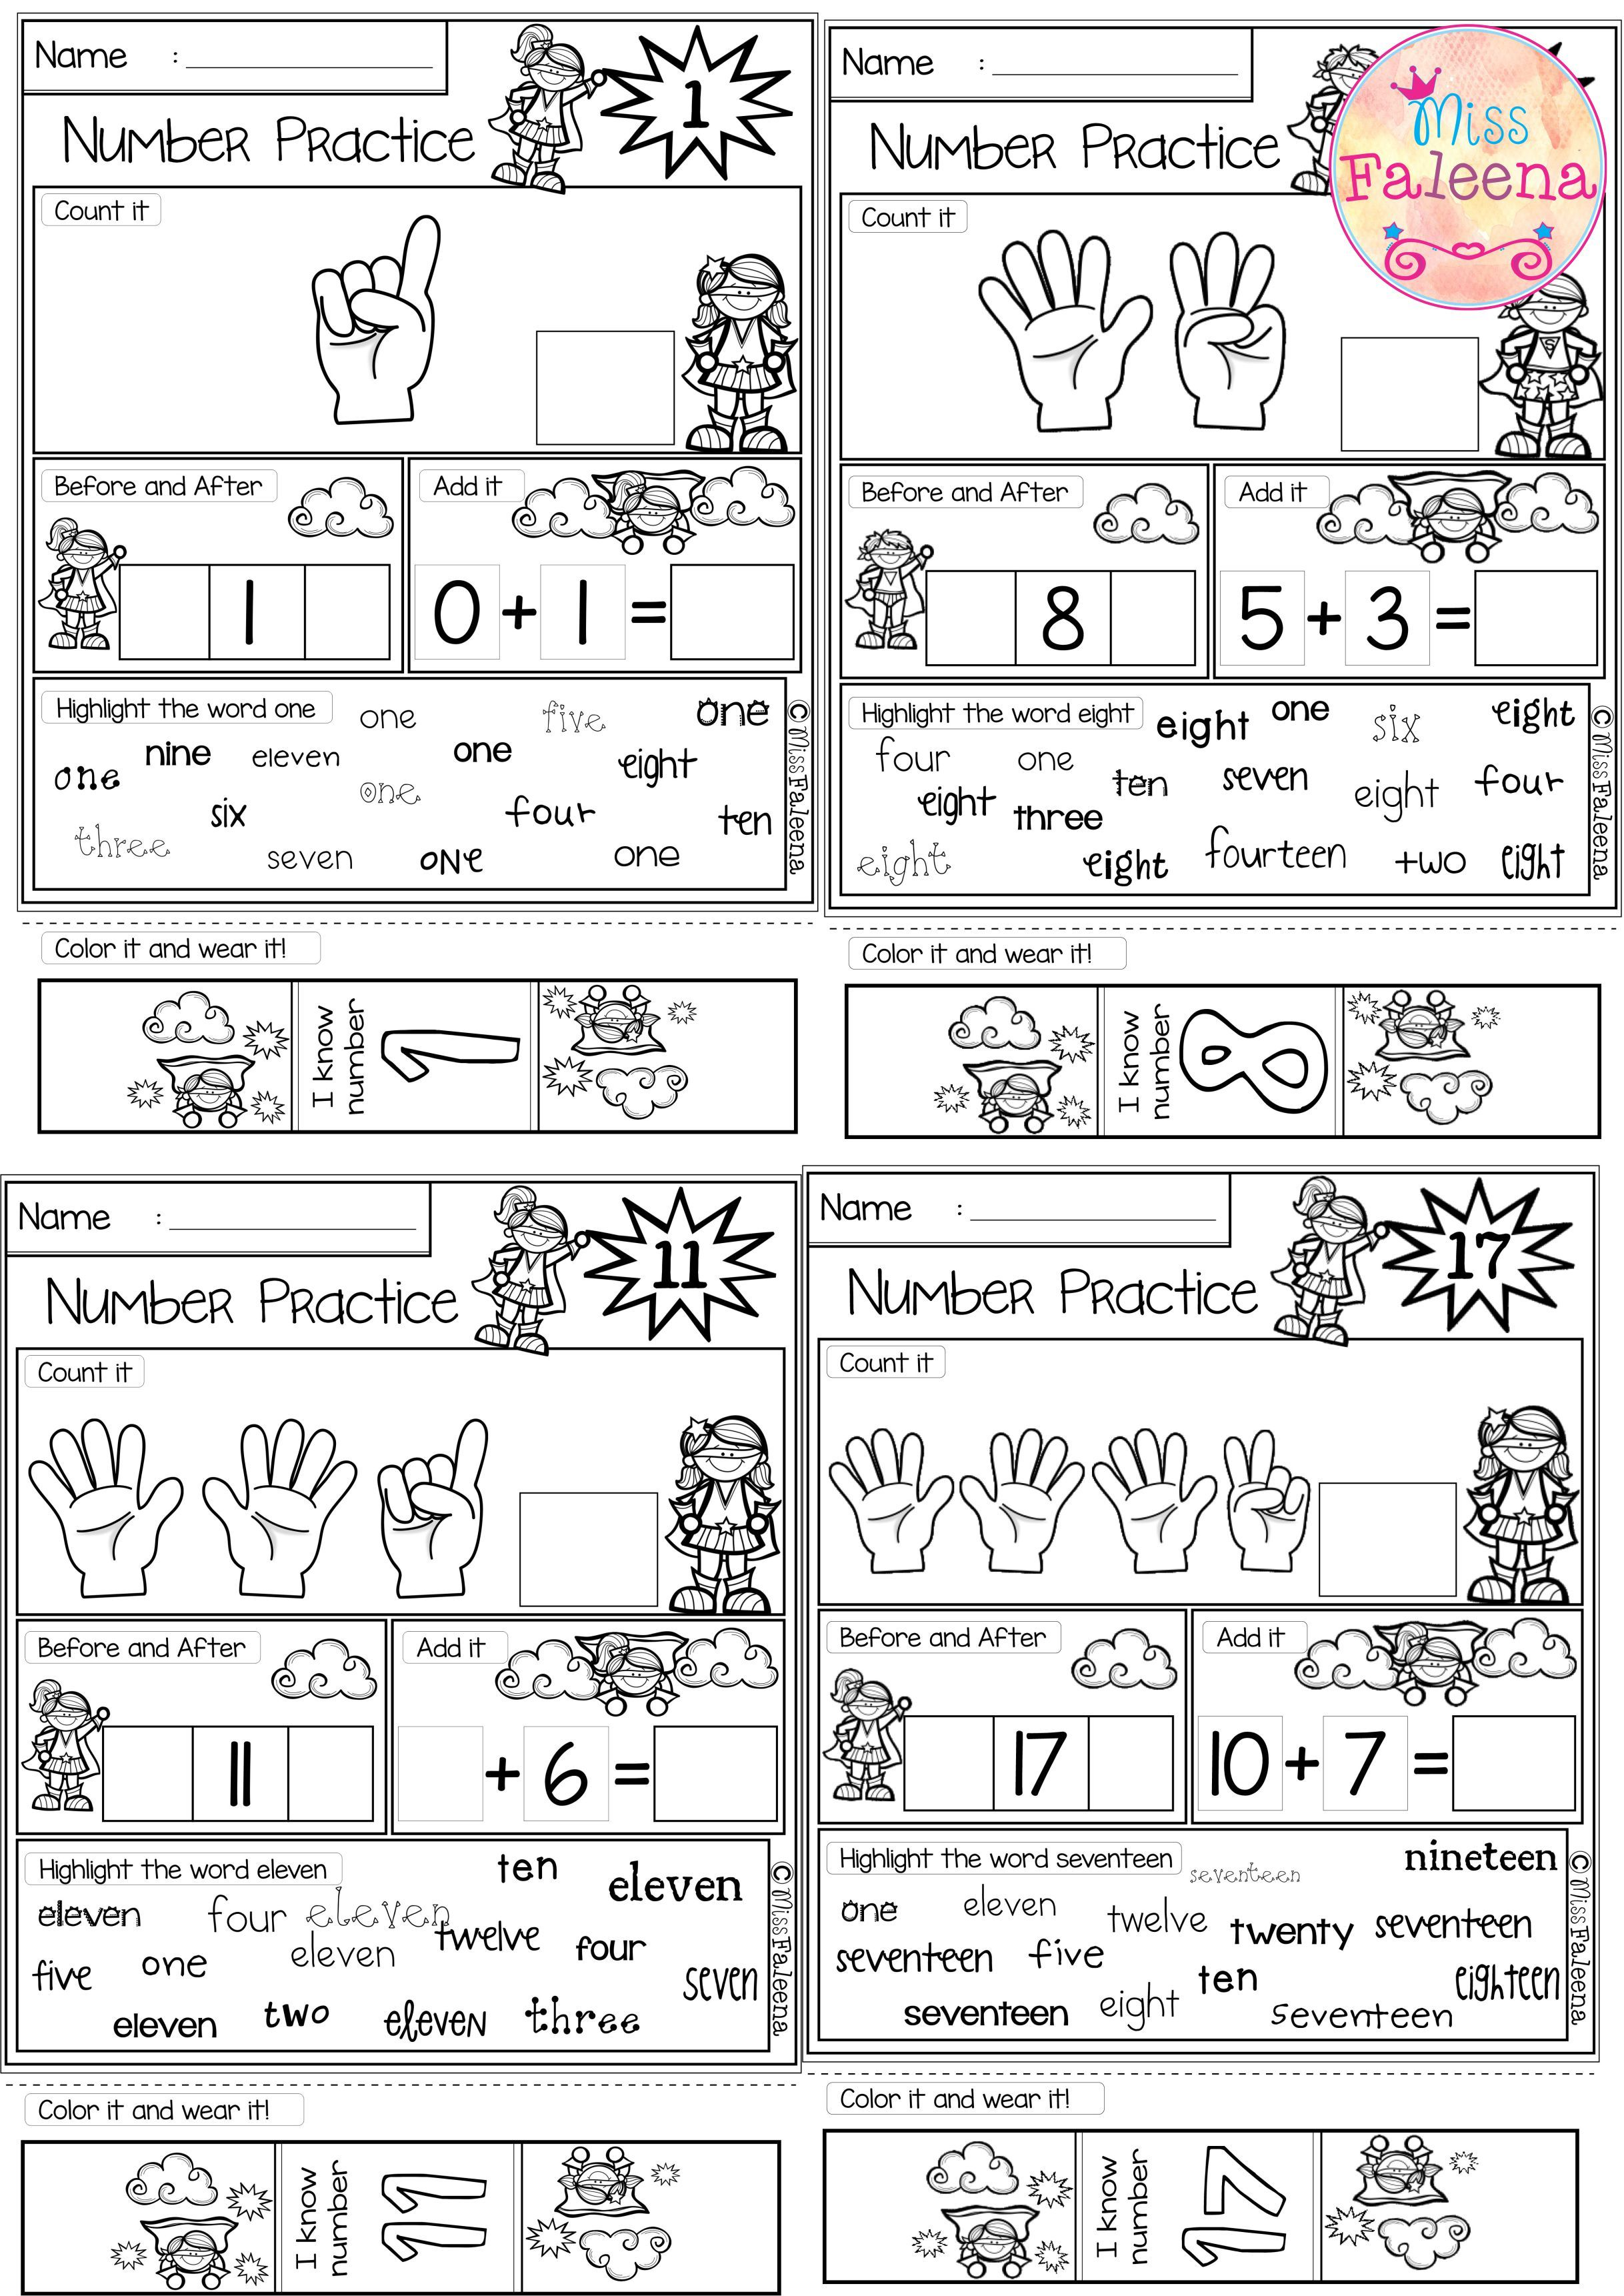 There Are 20 Pages 1 20 Number Practice Worksheets In This Product Al Number Worksheets Kindergarten Numbers Kindergarten Counting Worksheets For Kindergarten